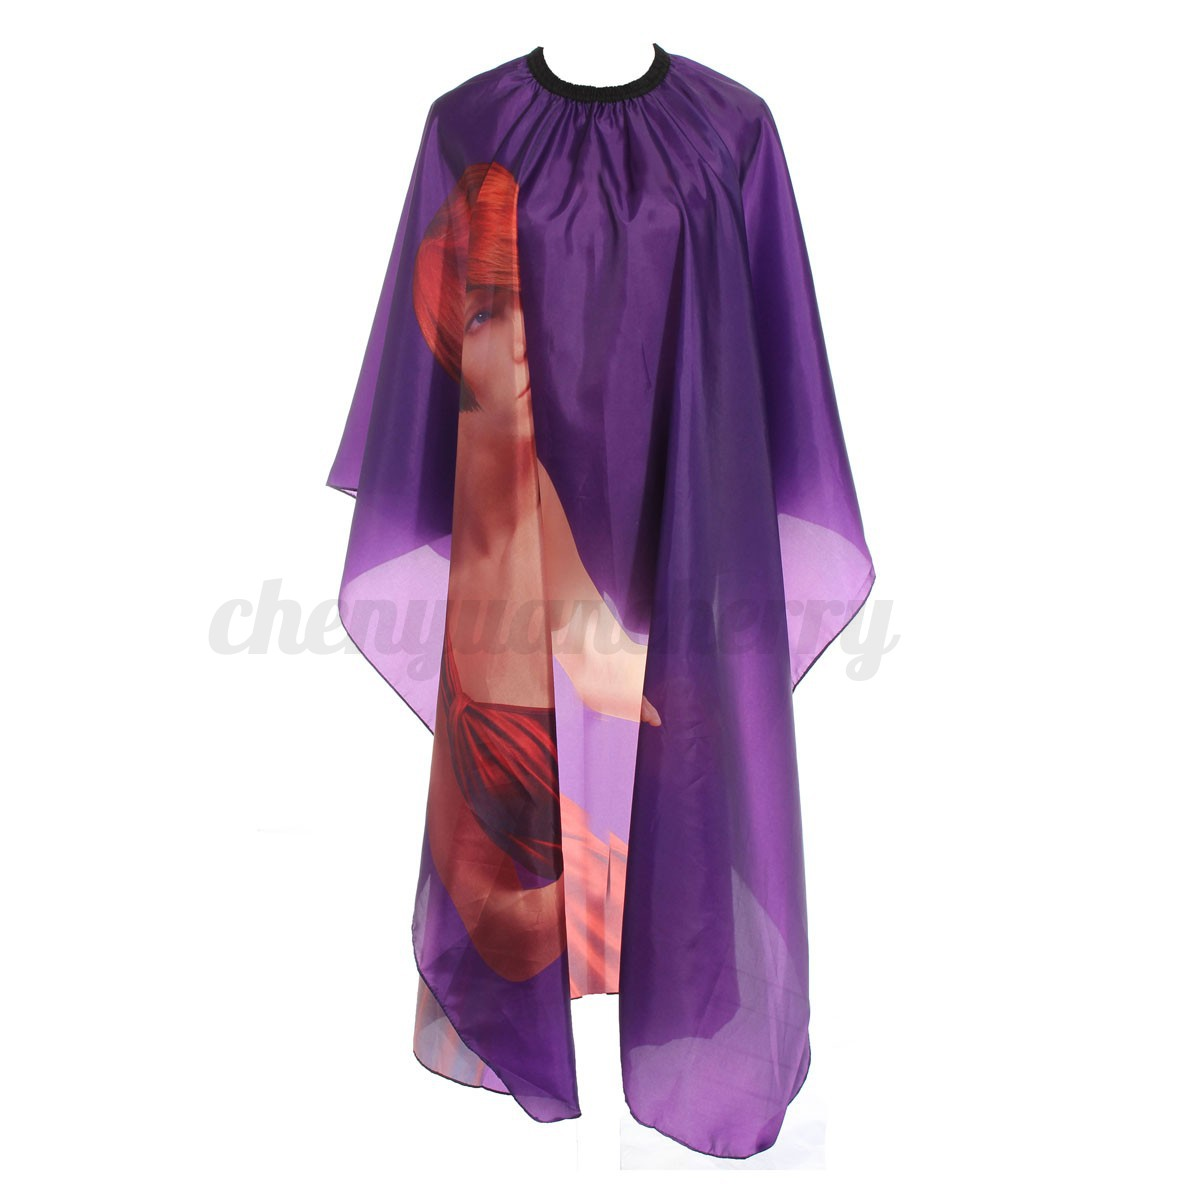 Health & Beauty > Salon & Spa Equipment > Styling Capes & G...